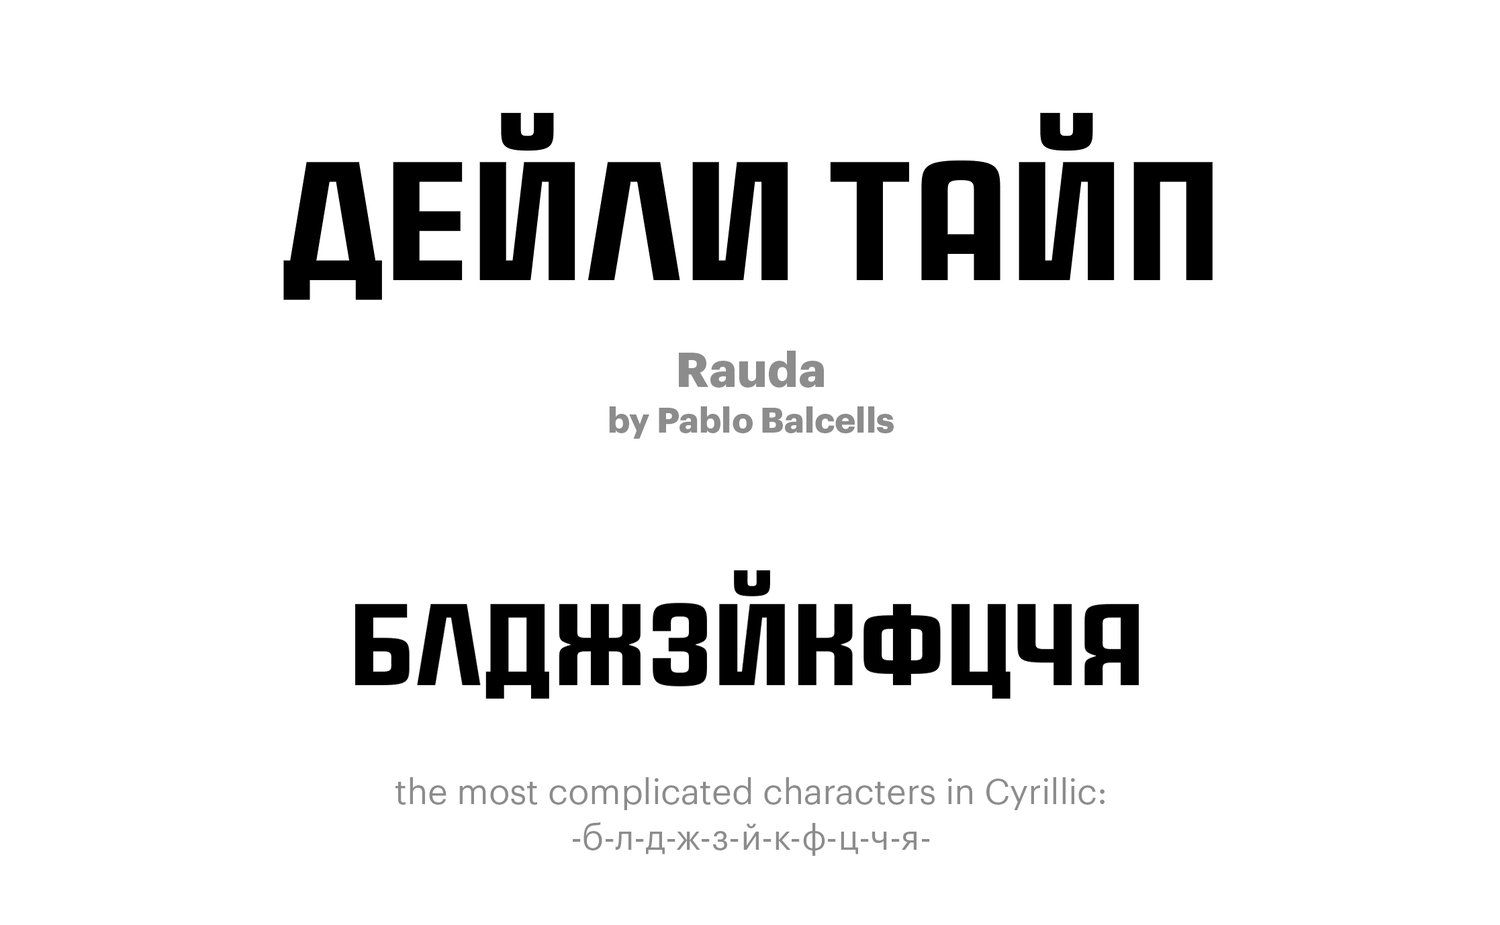 Rauda-by-Pablo-Balcells